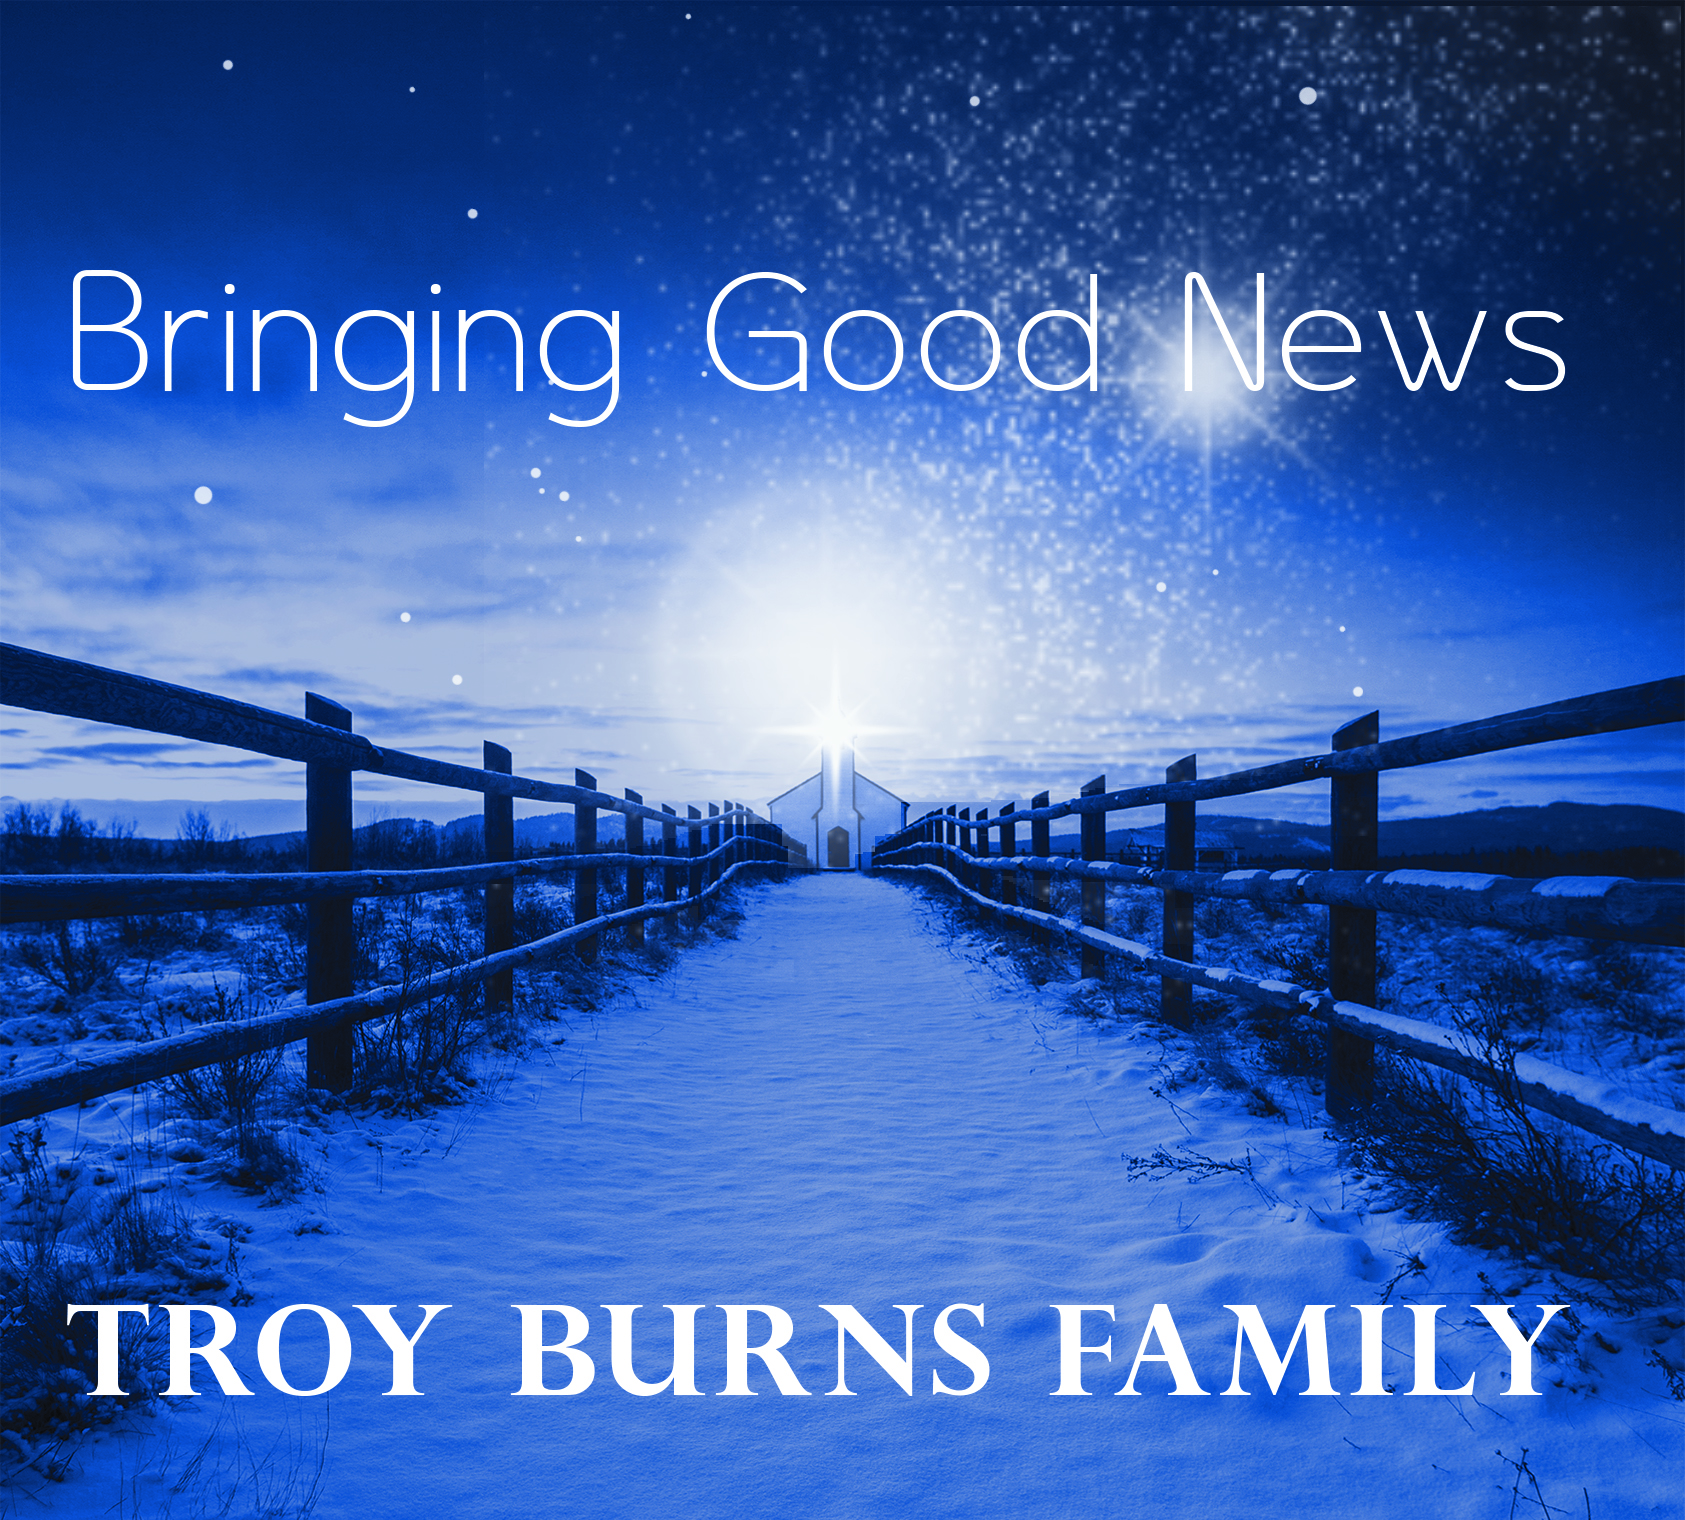 Bringing Good News – Troy Burns Family